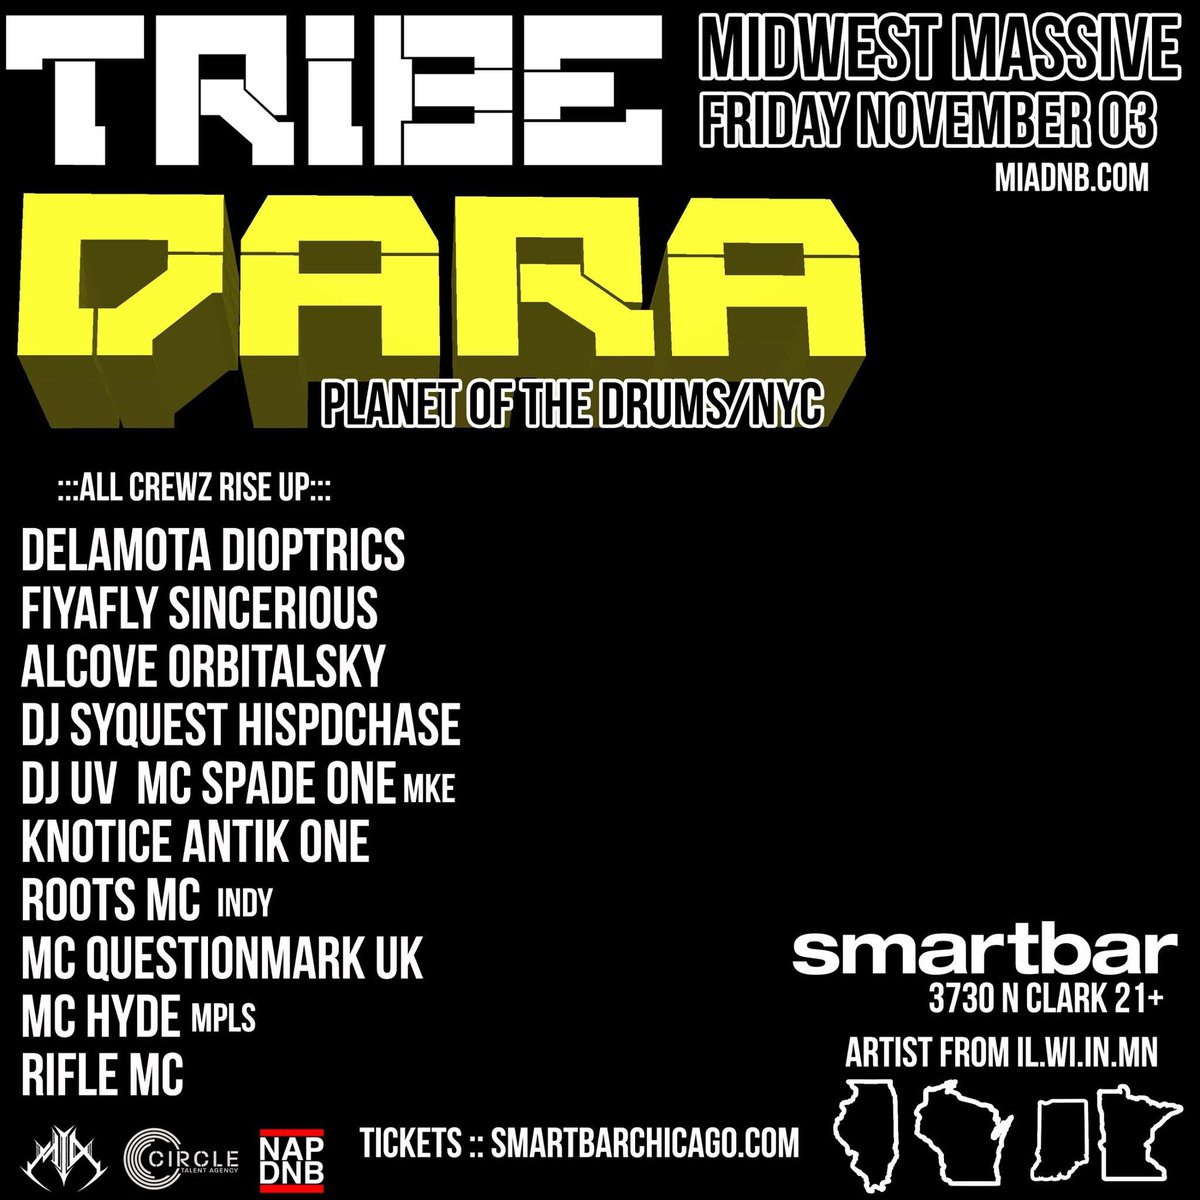 @daralickt  back in Chicago and back at @SmartBar  #midwestMassive w 16 artist from all over #Wi #Il #mn #IN<br>http://pic.twitter.com/5qpz3VaFR8